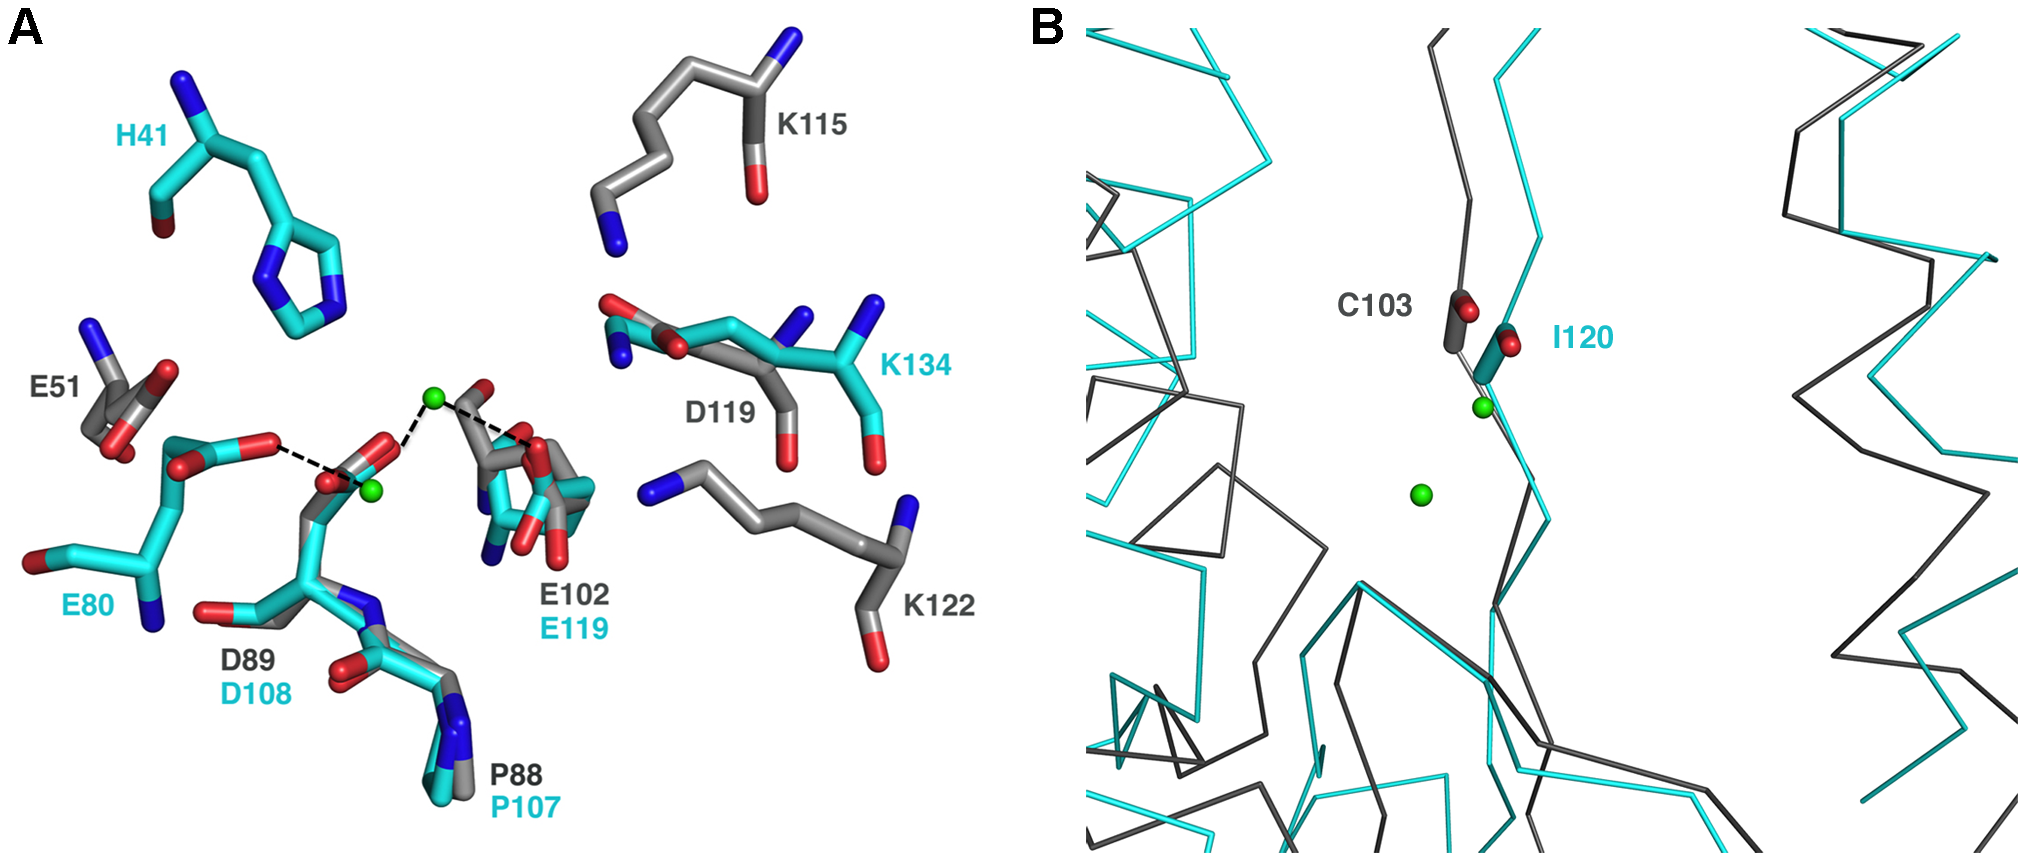 The endonuclease active site.